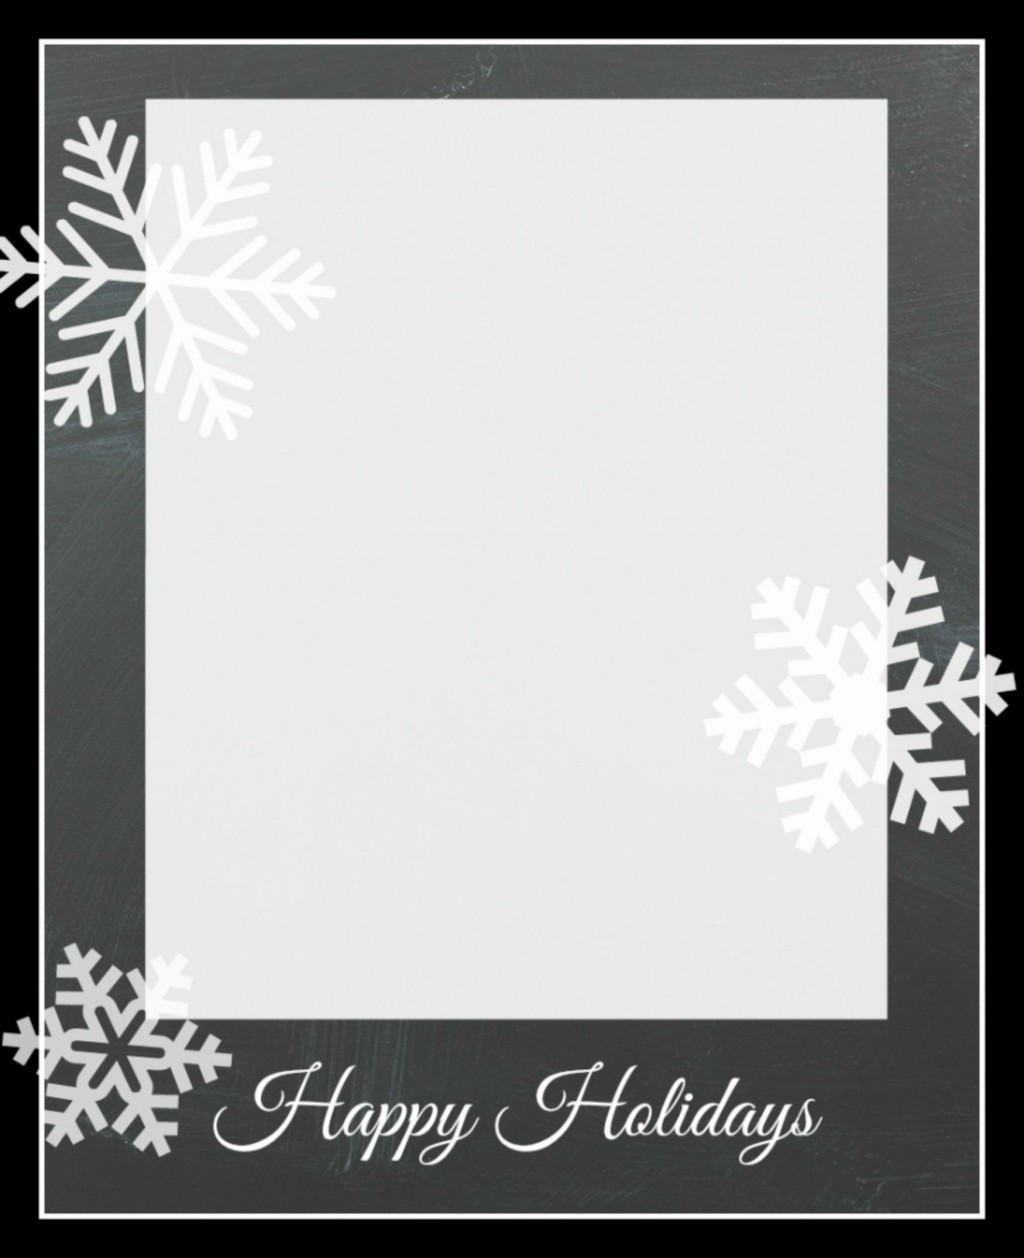 009 Beautiful Free Photo Christma Card Template Image  Templates For Photoshop OnlineLarge